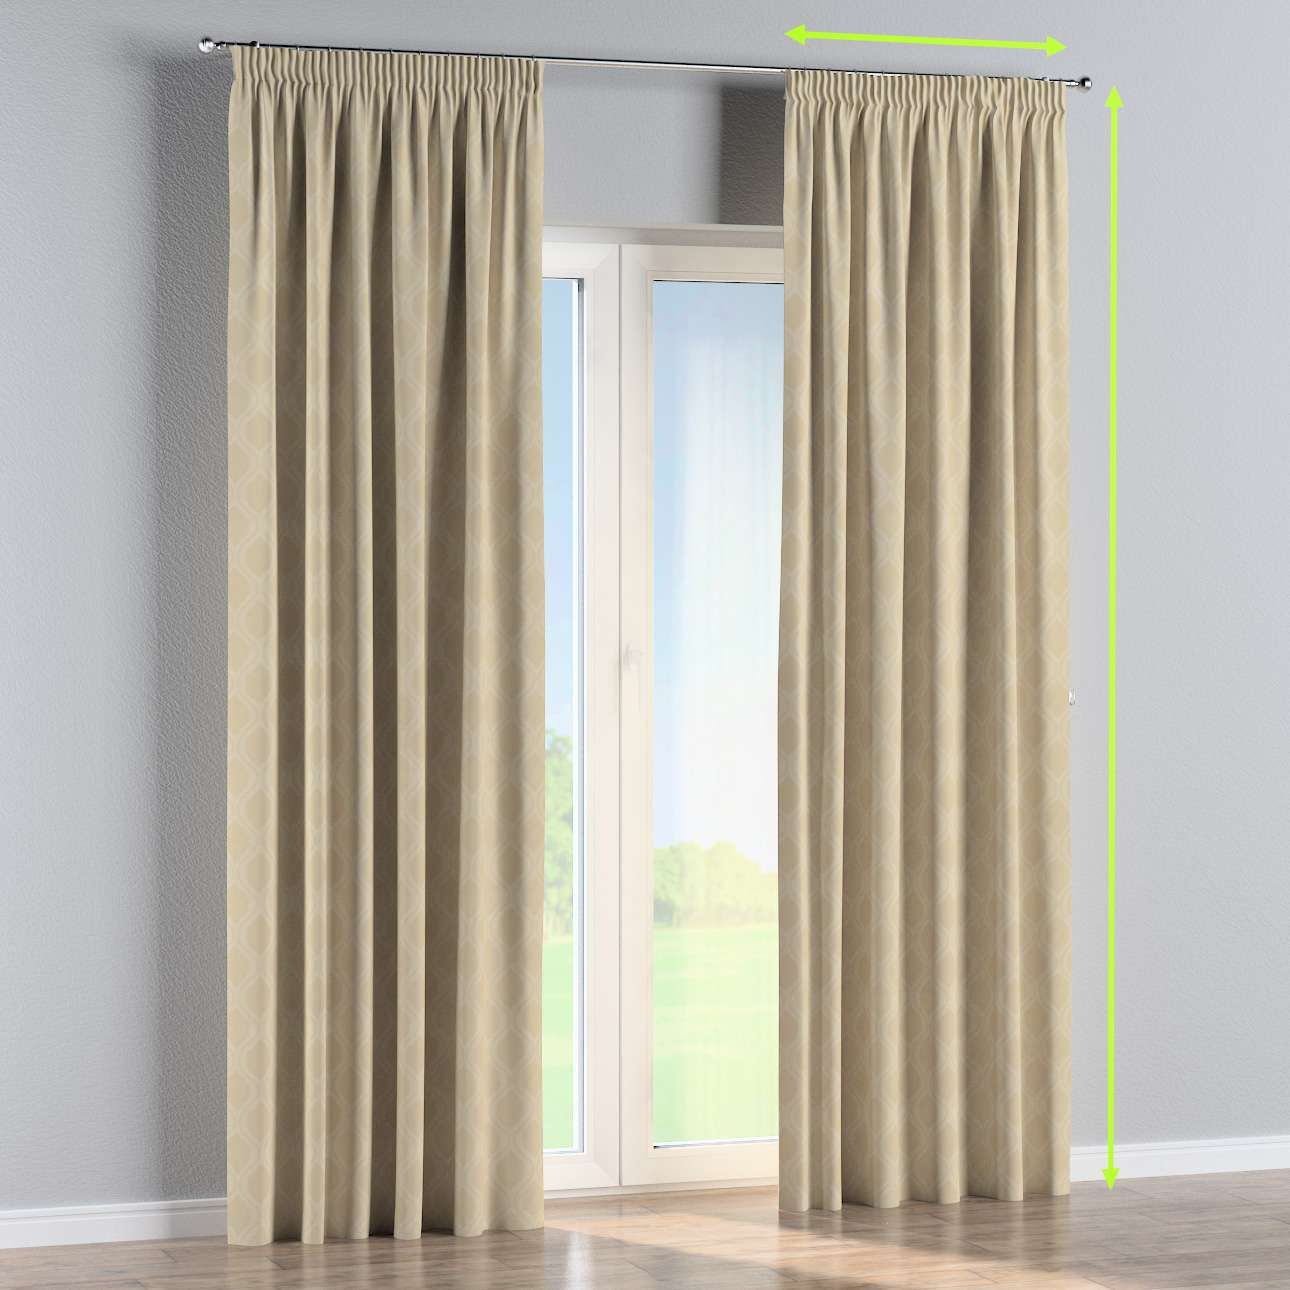 Pencil pleat curtain in collection Damasco, fabric: 142-53